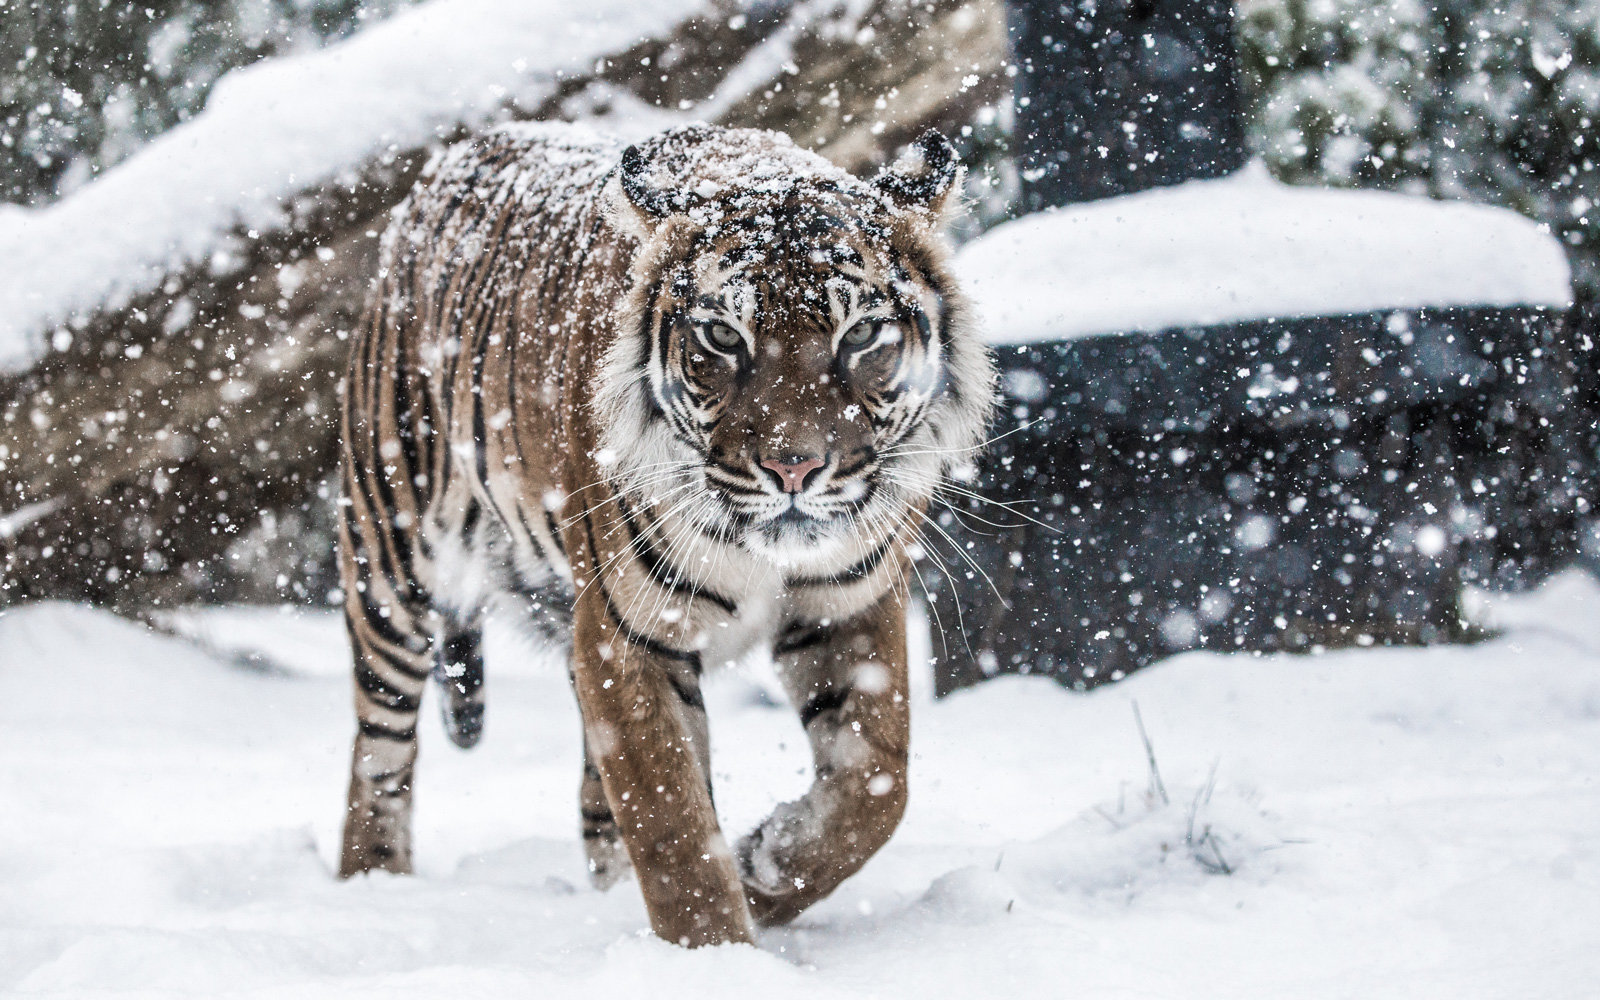 A Sumatran tiger at the London Zoo, in the snow.